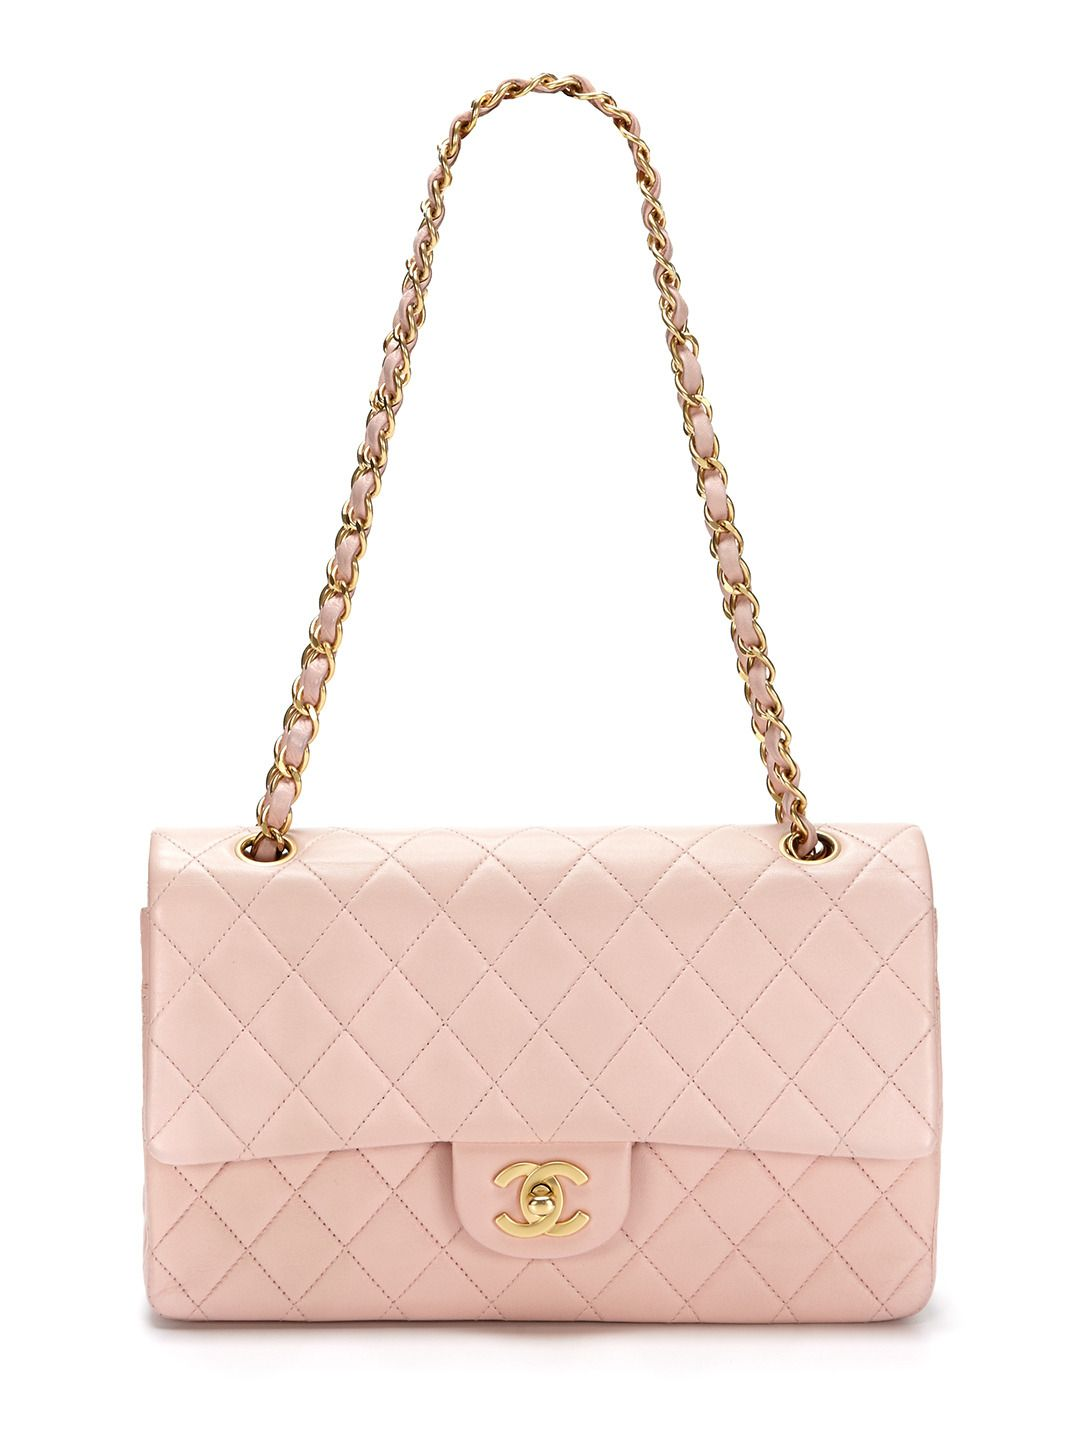 2c3afc263223 Pink/Peach Quilted Lambskin Leather Large 2.55 Double Flap Bag by Chanel